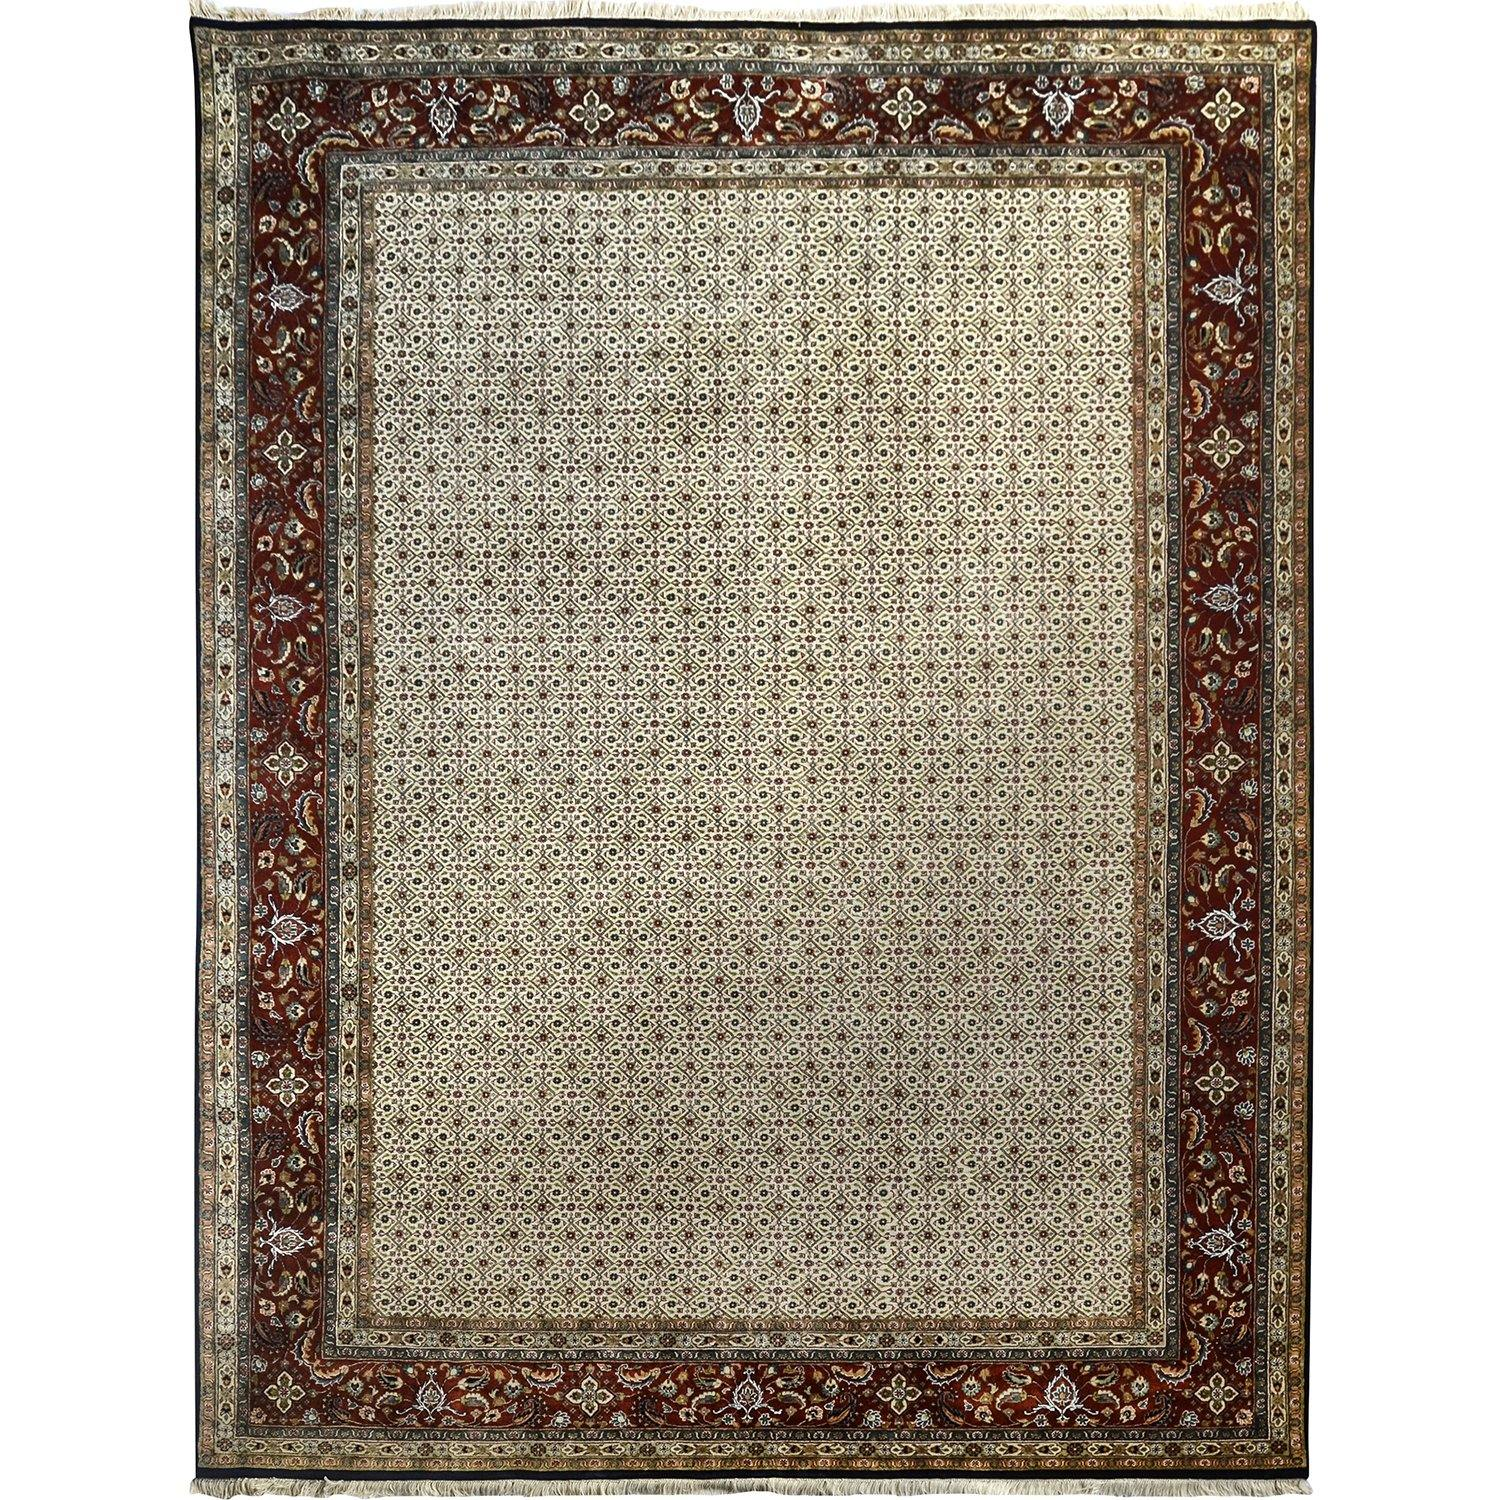 Super Fine Hand-knotted Maud Wool & Silk Large Rug 249cm x 353cm Persian-Rug | House-of-Haghi | NewMarket | Auckland | NZ | Handmade Persian Rugs | Hand Knotted Persian Rugs